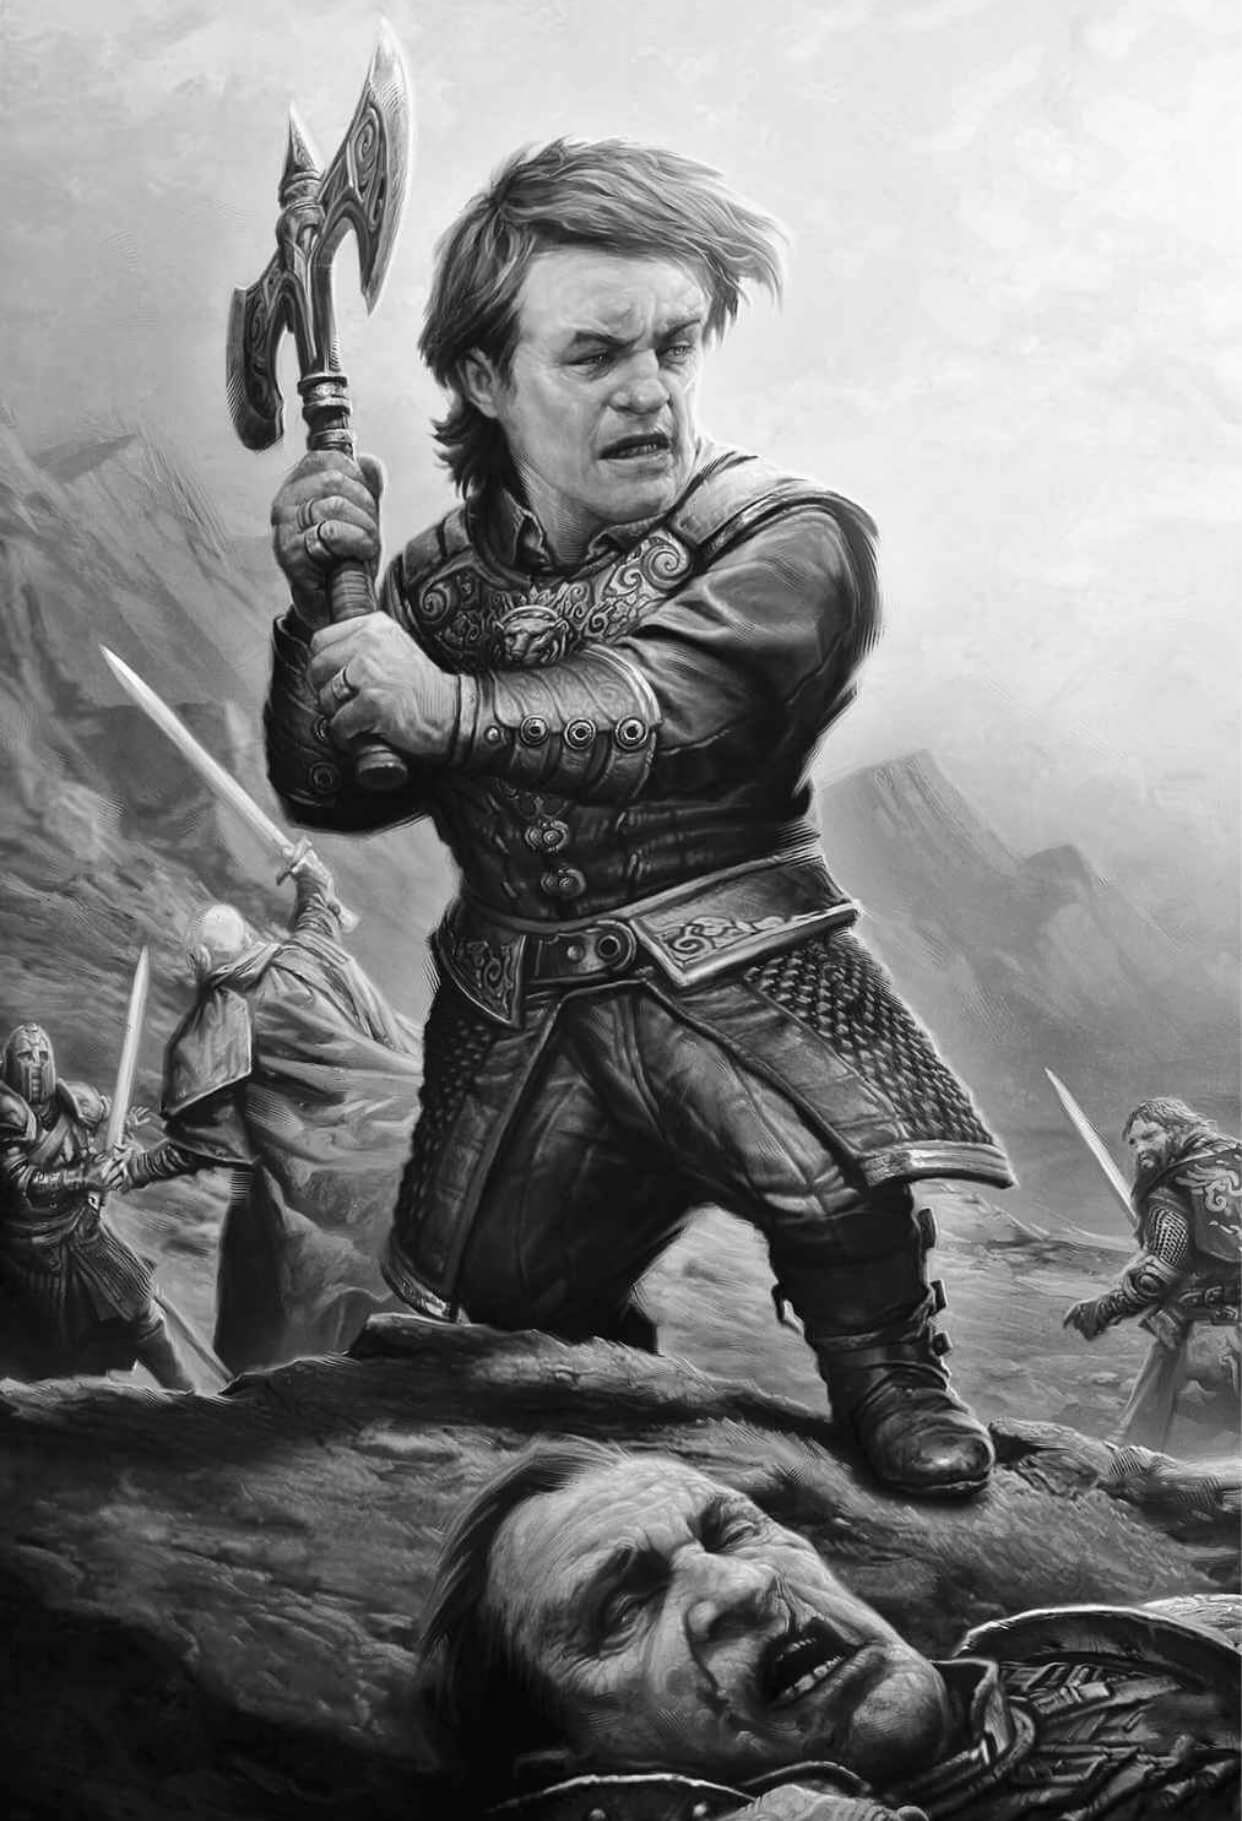 61 R6p6jws Asoiaf Art A Song Of Ice And Fire Tyrion Lannister Book